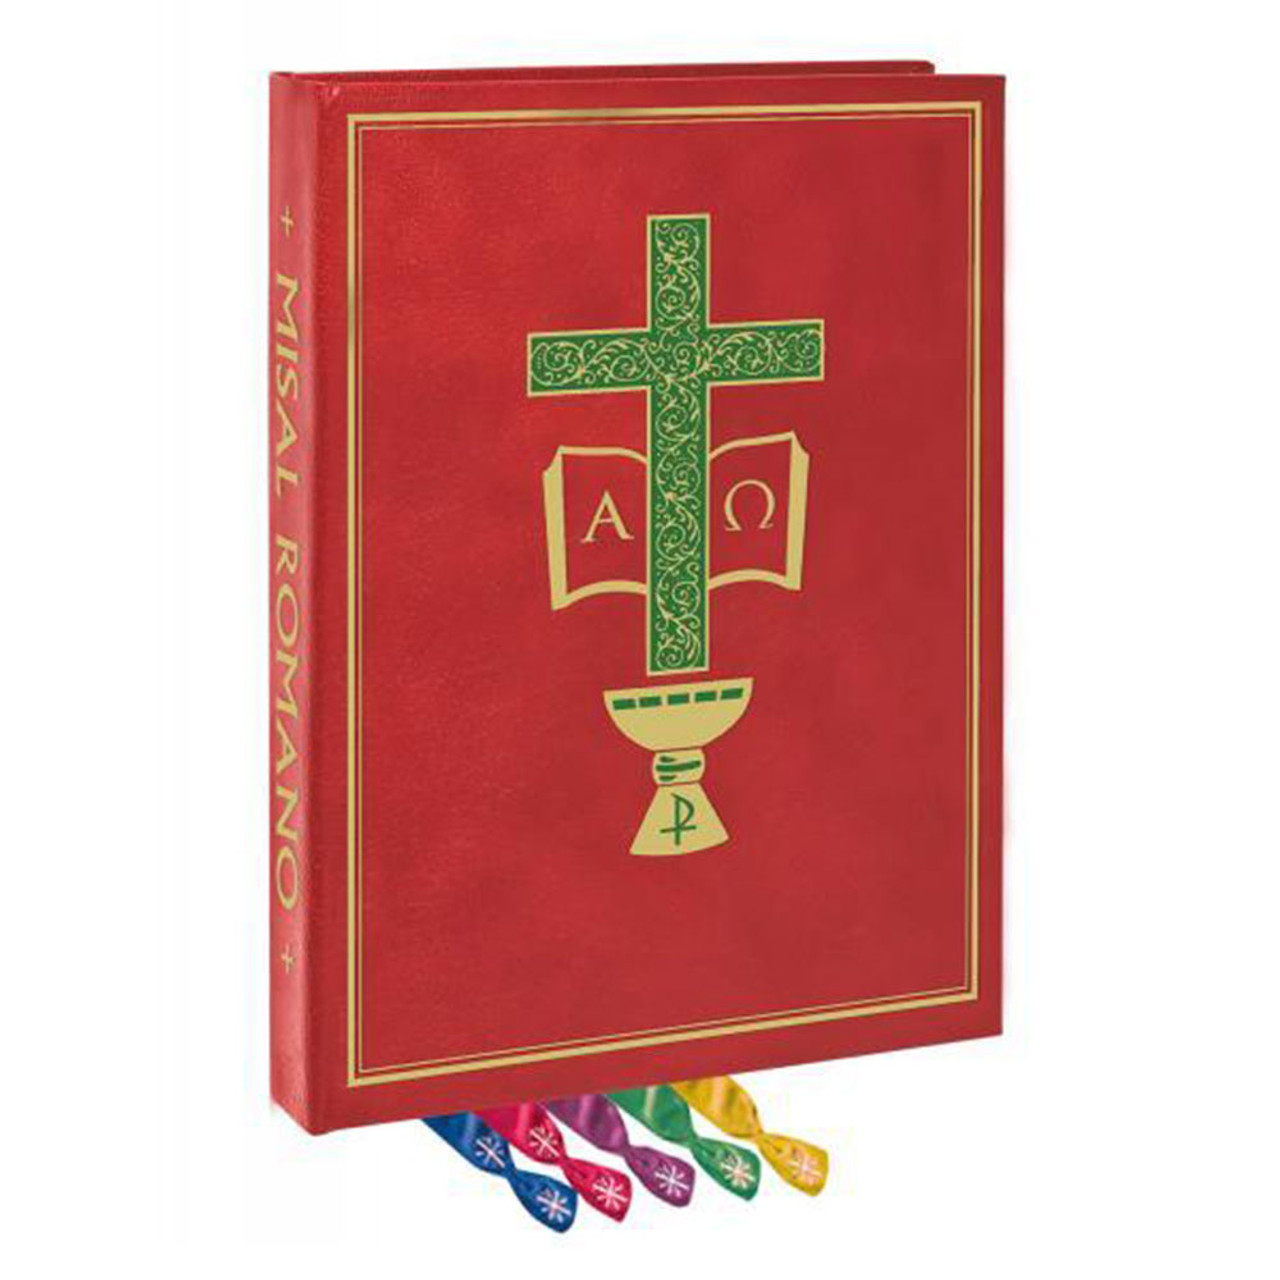 Misal Romano Chapel Edition Catholic Book